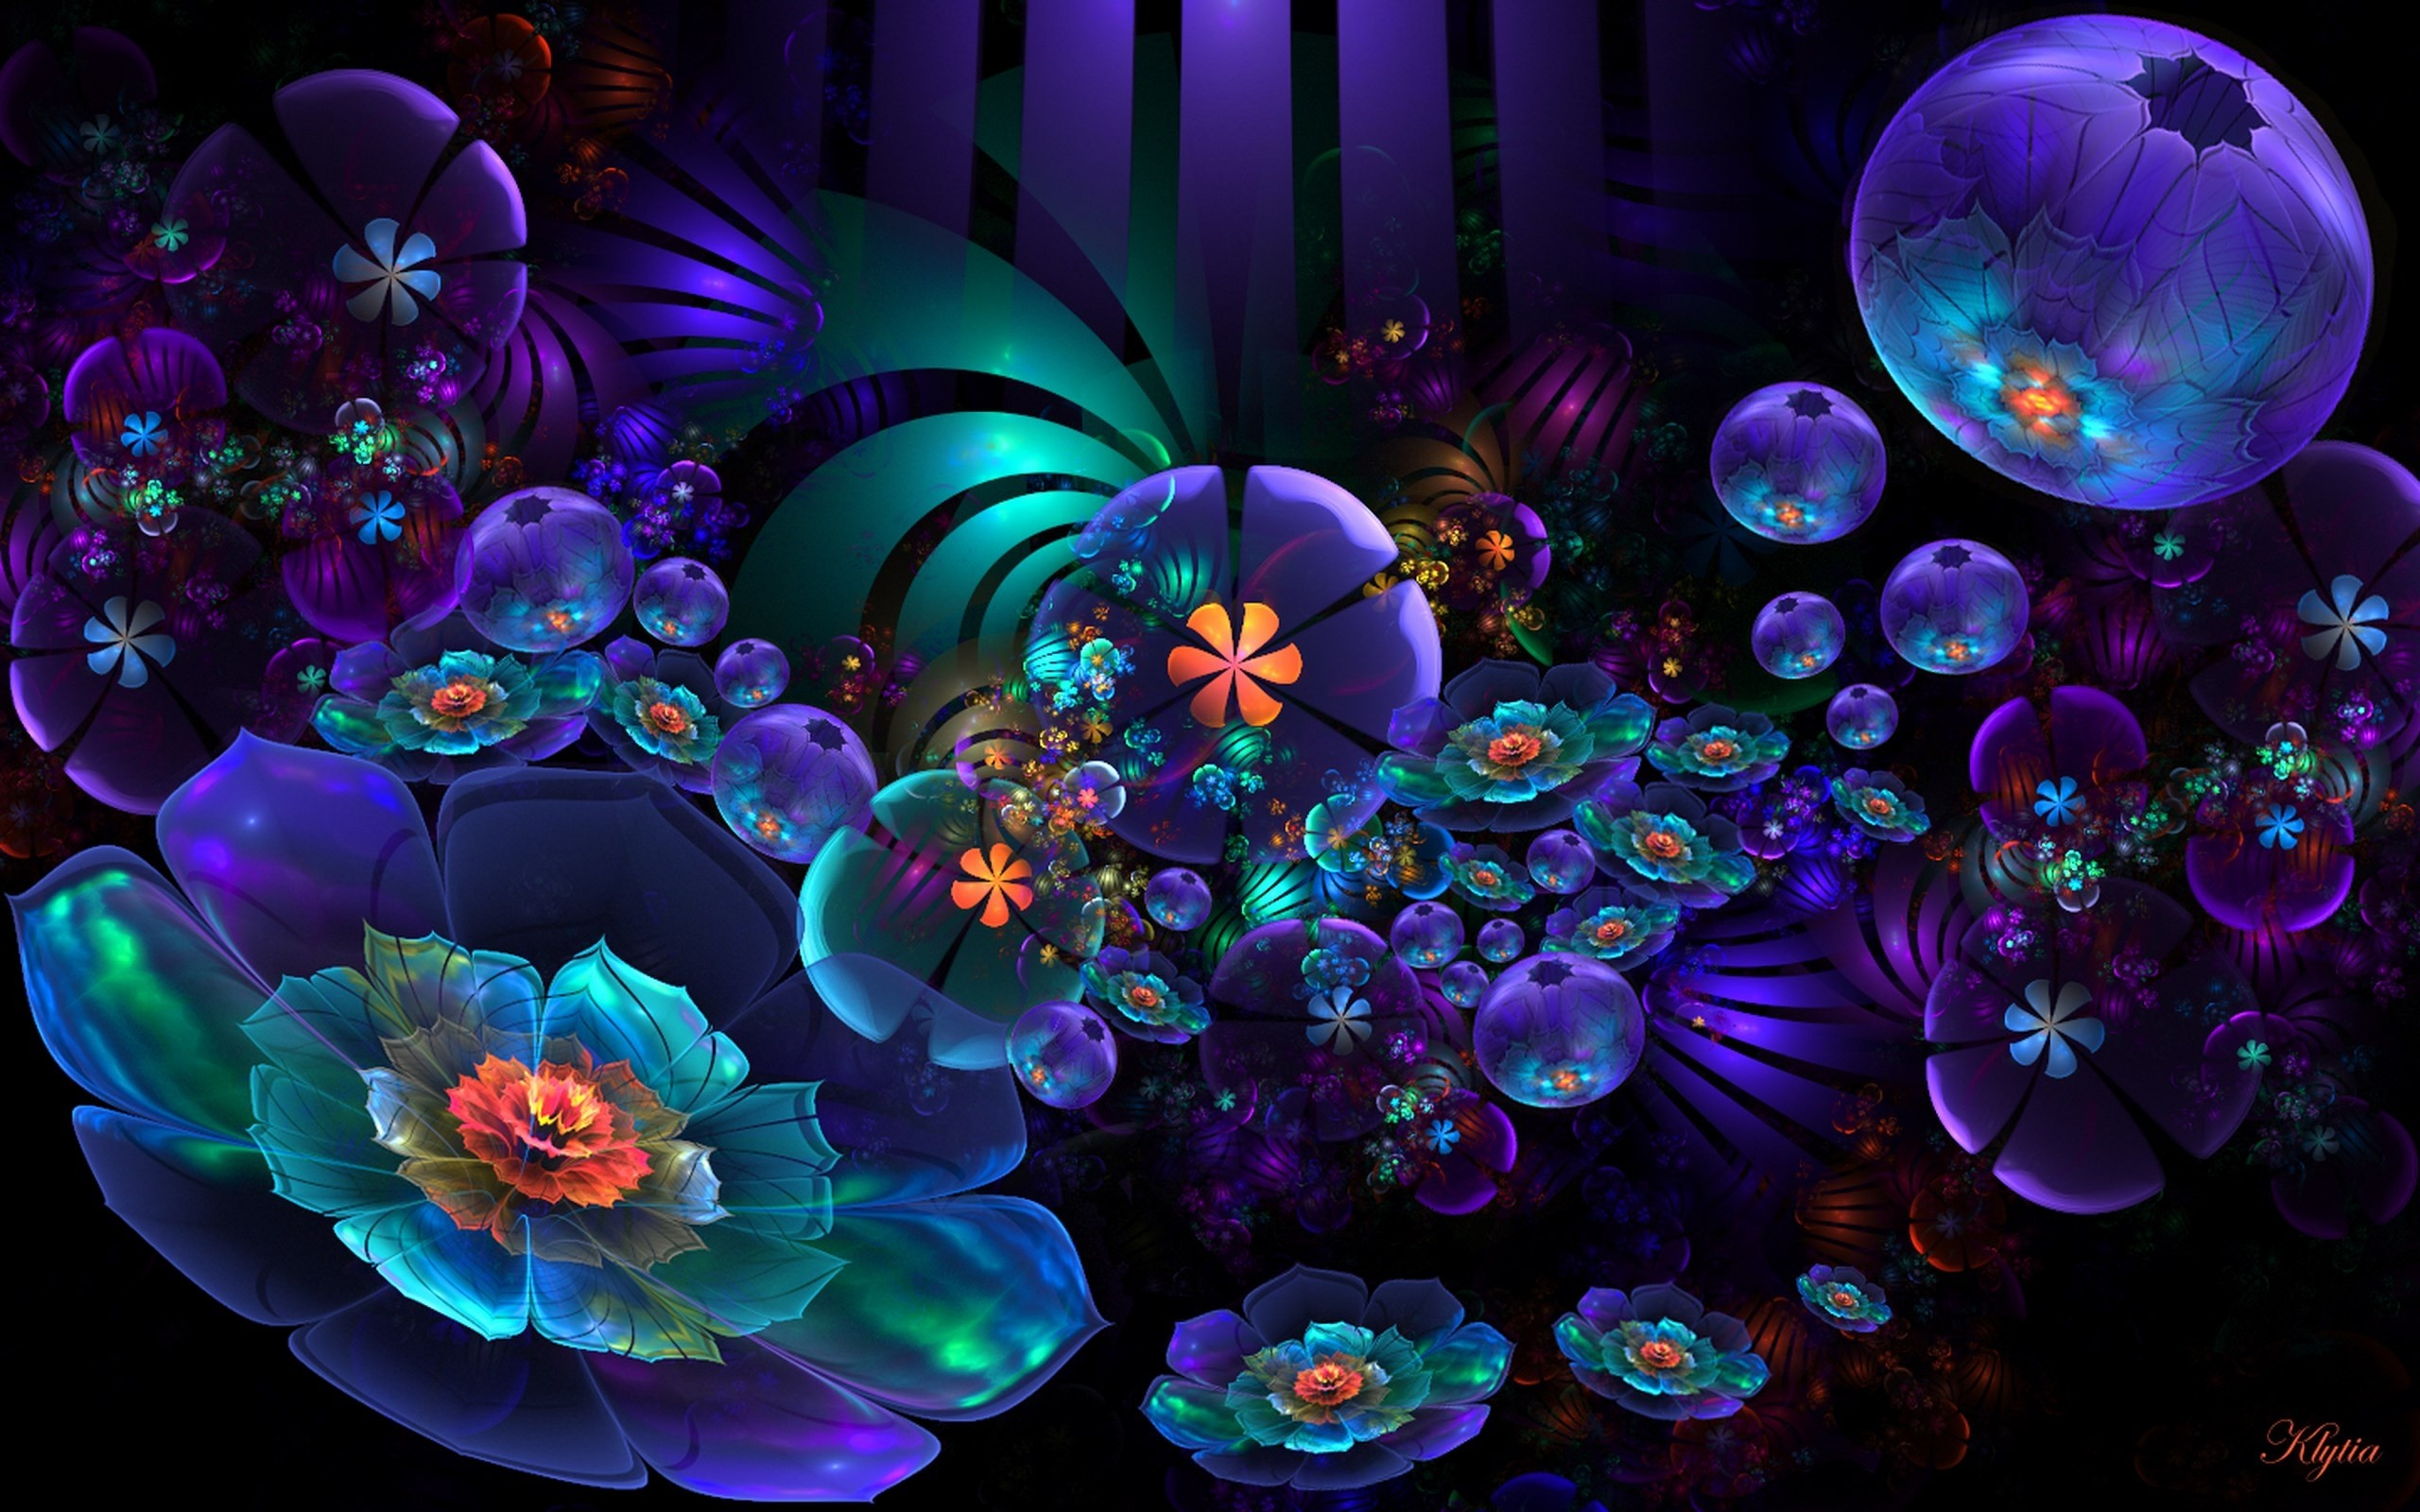 2560x1600 View, download, comment, and rate this  Neon Flower Abstract  Wallpaper - Wallpaper